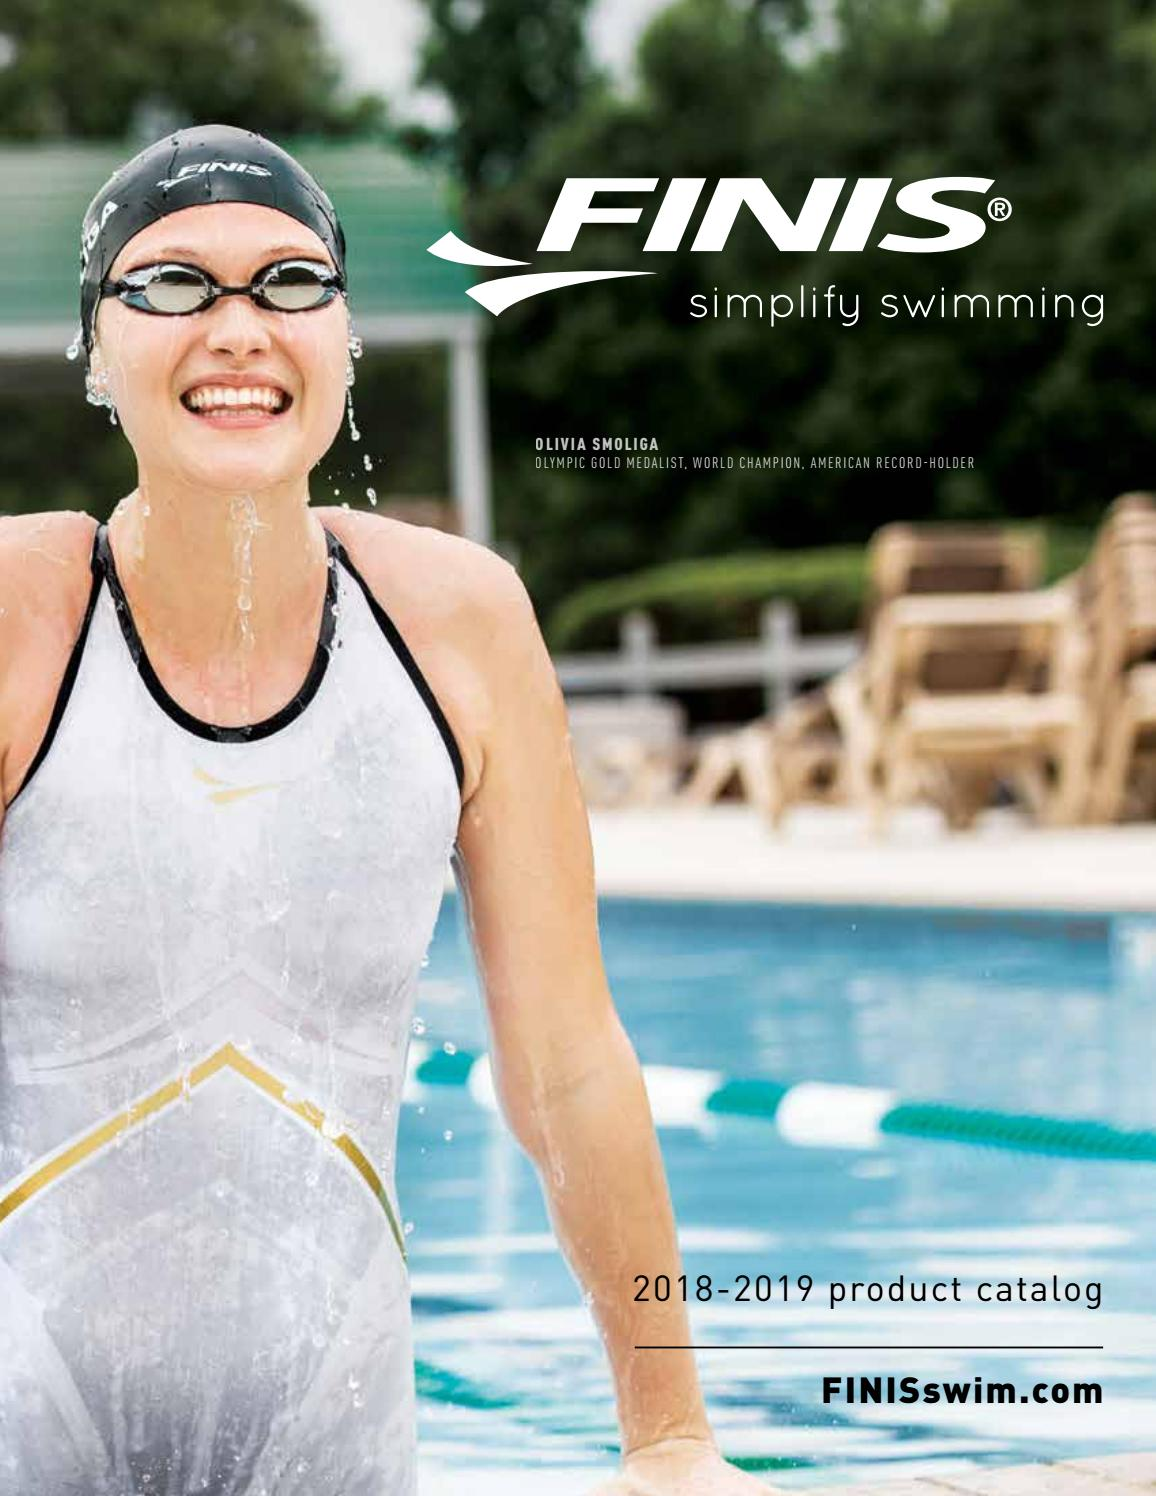 Finis Pulling ANKLE Strap Band Swim Strength Training Equipment 1.05.052.104 new